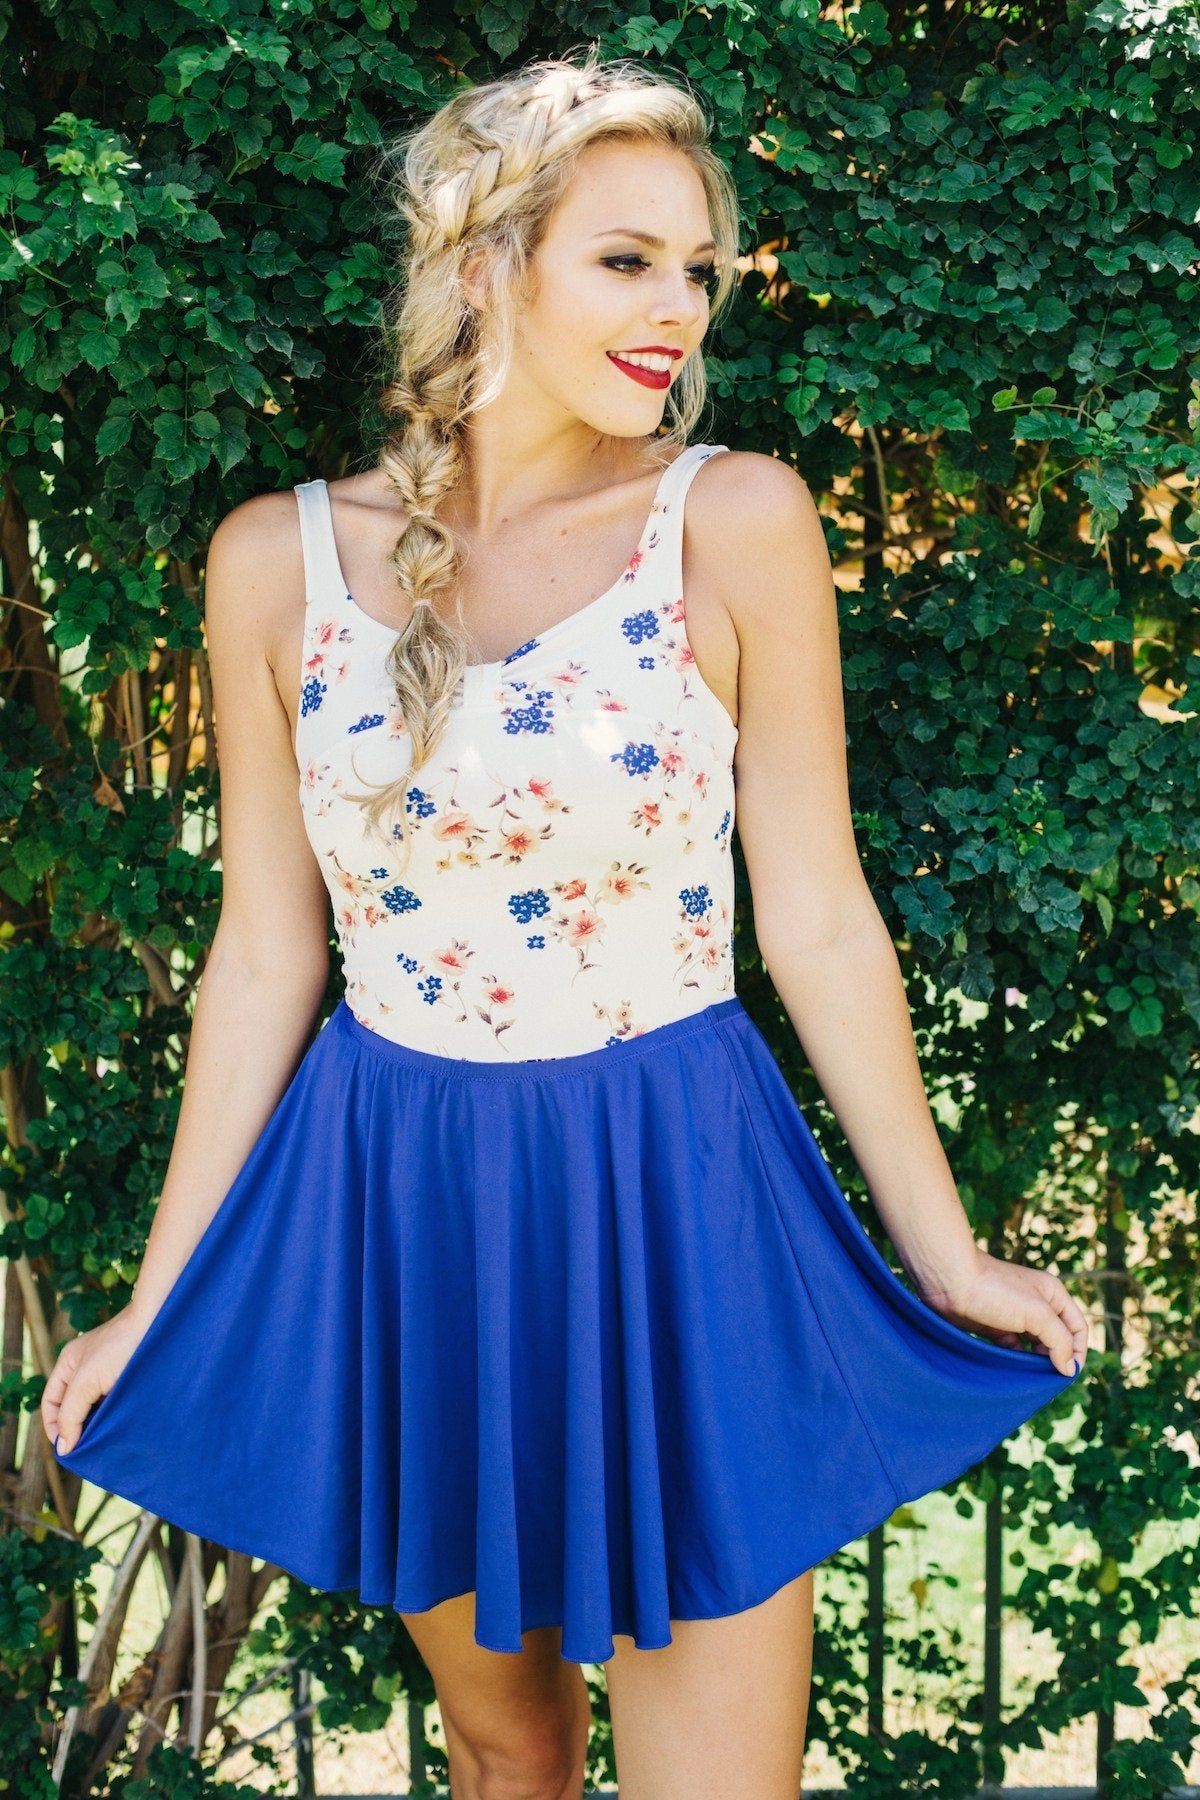 skirt in blueberry